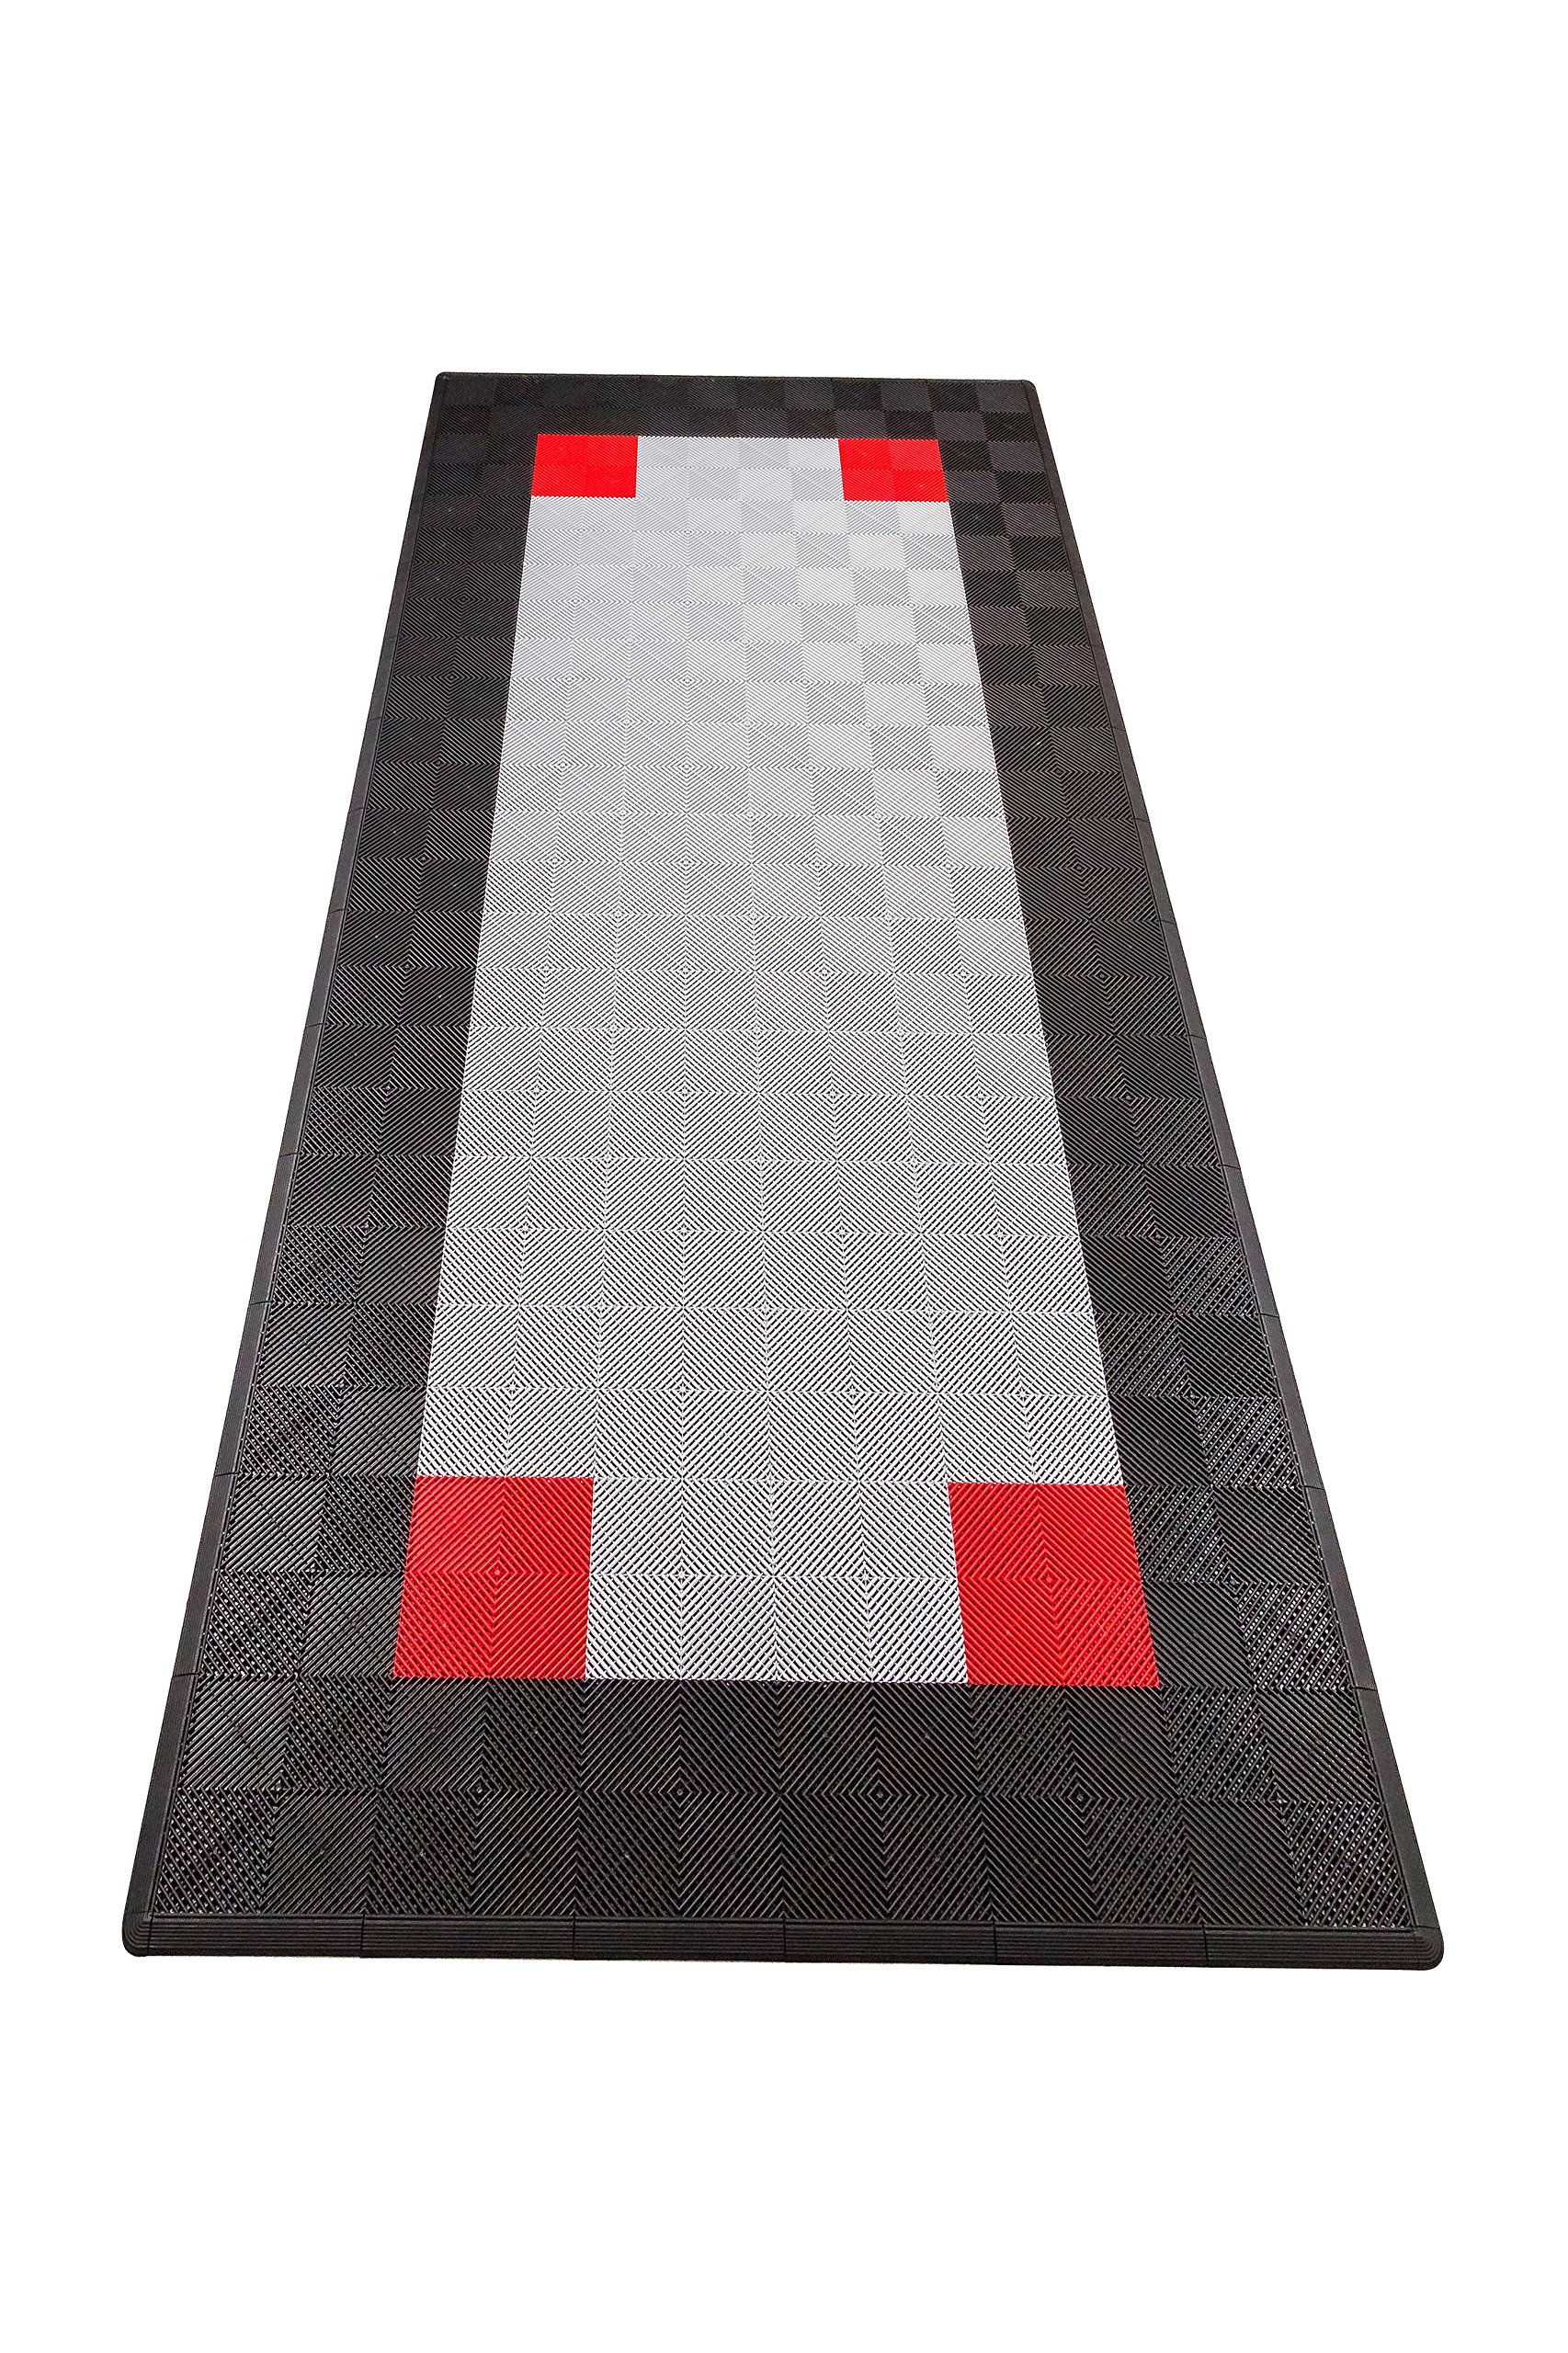 Swisstrax (ASNGCP-PSBLKRD) Ribtrax Single Car Pad with Edges, Black/Pearl Silver/Red